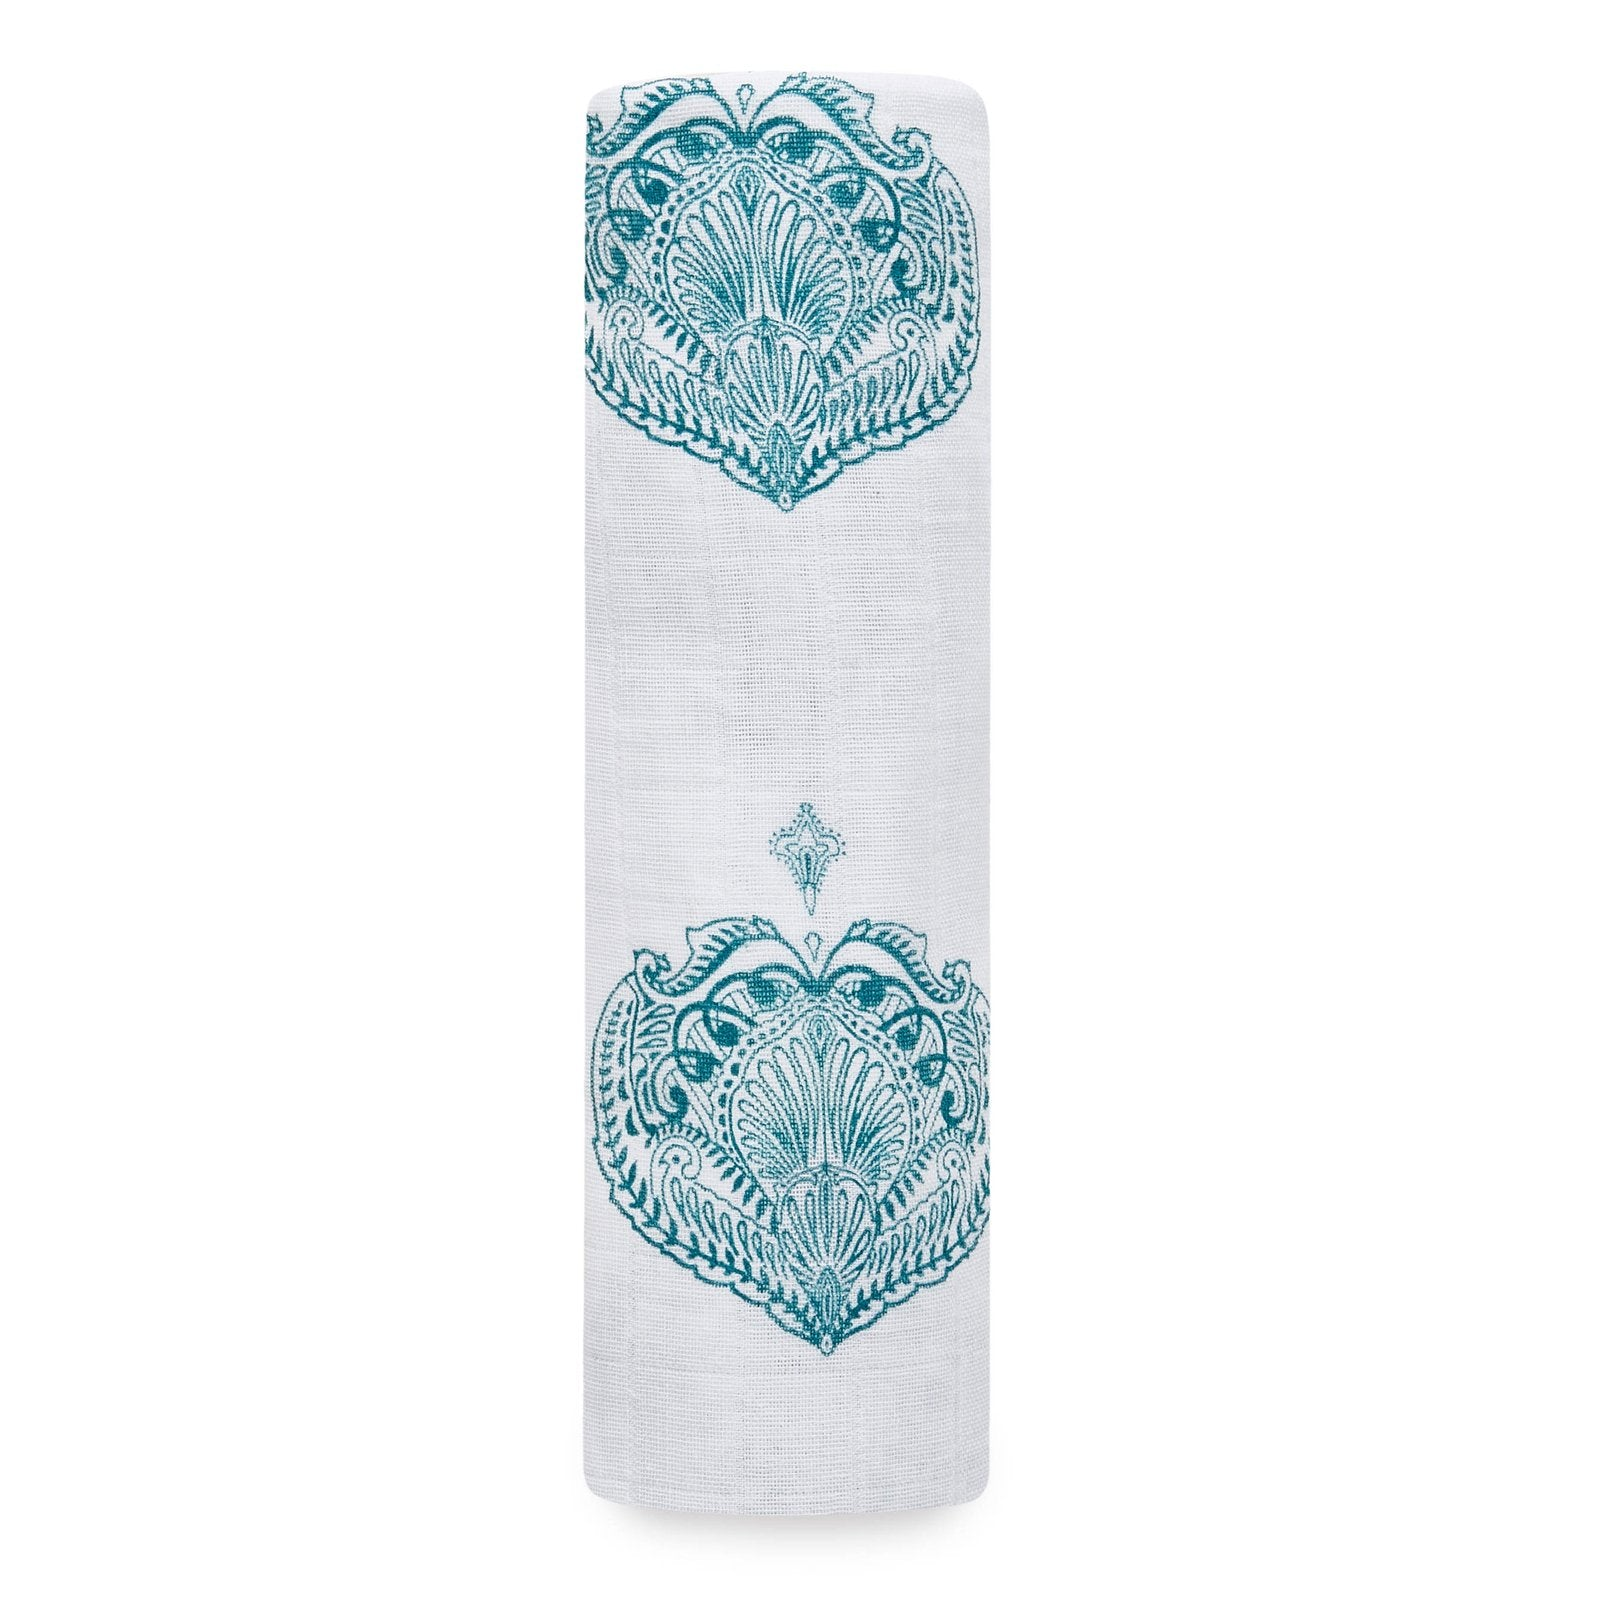 aden + anais paisley teal single swaddle